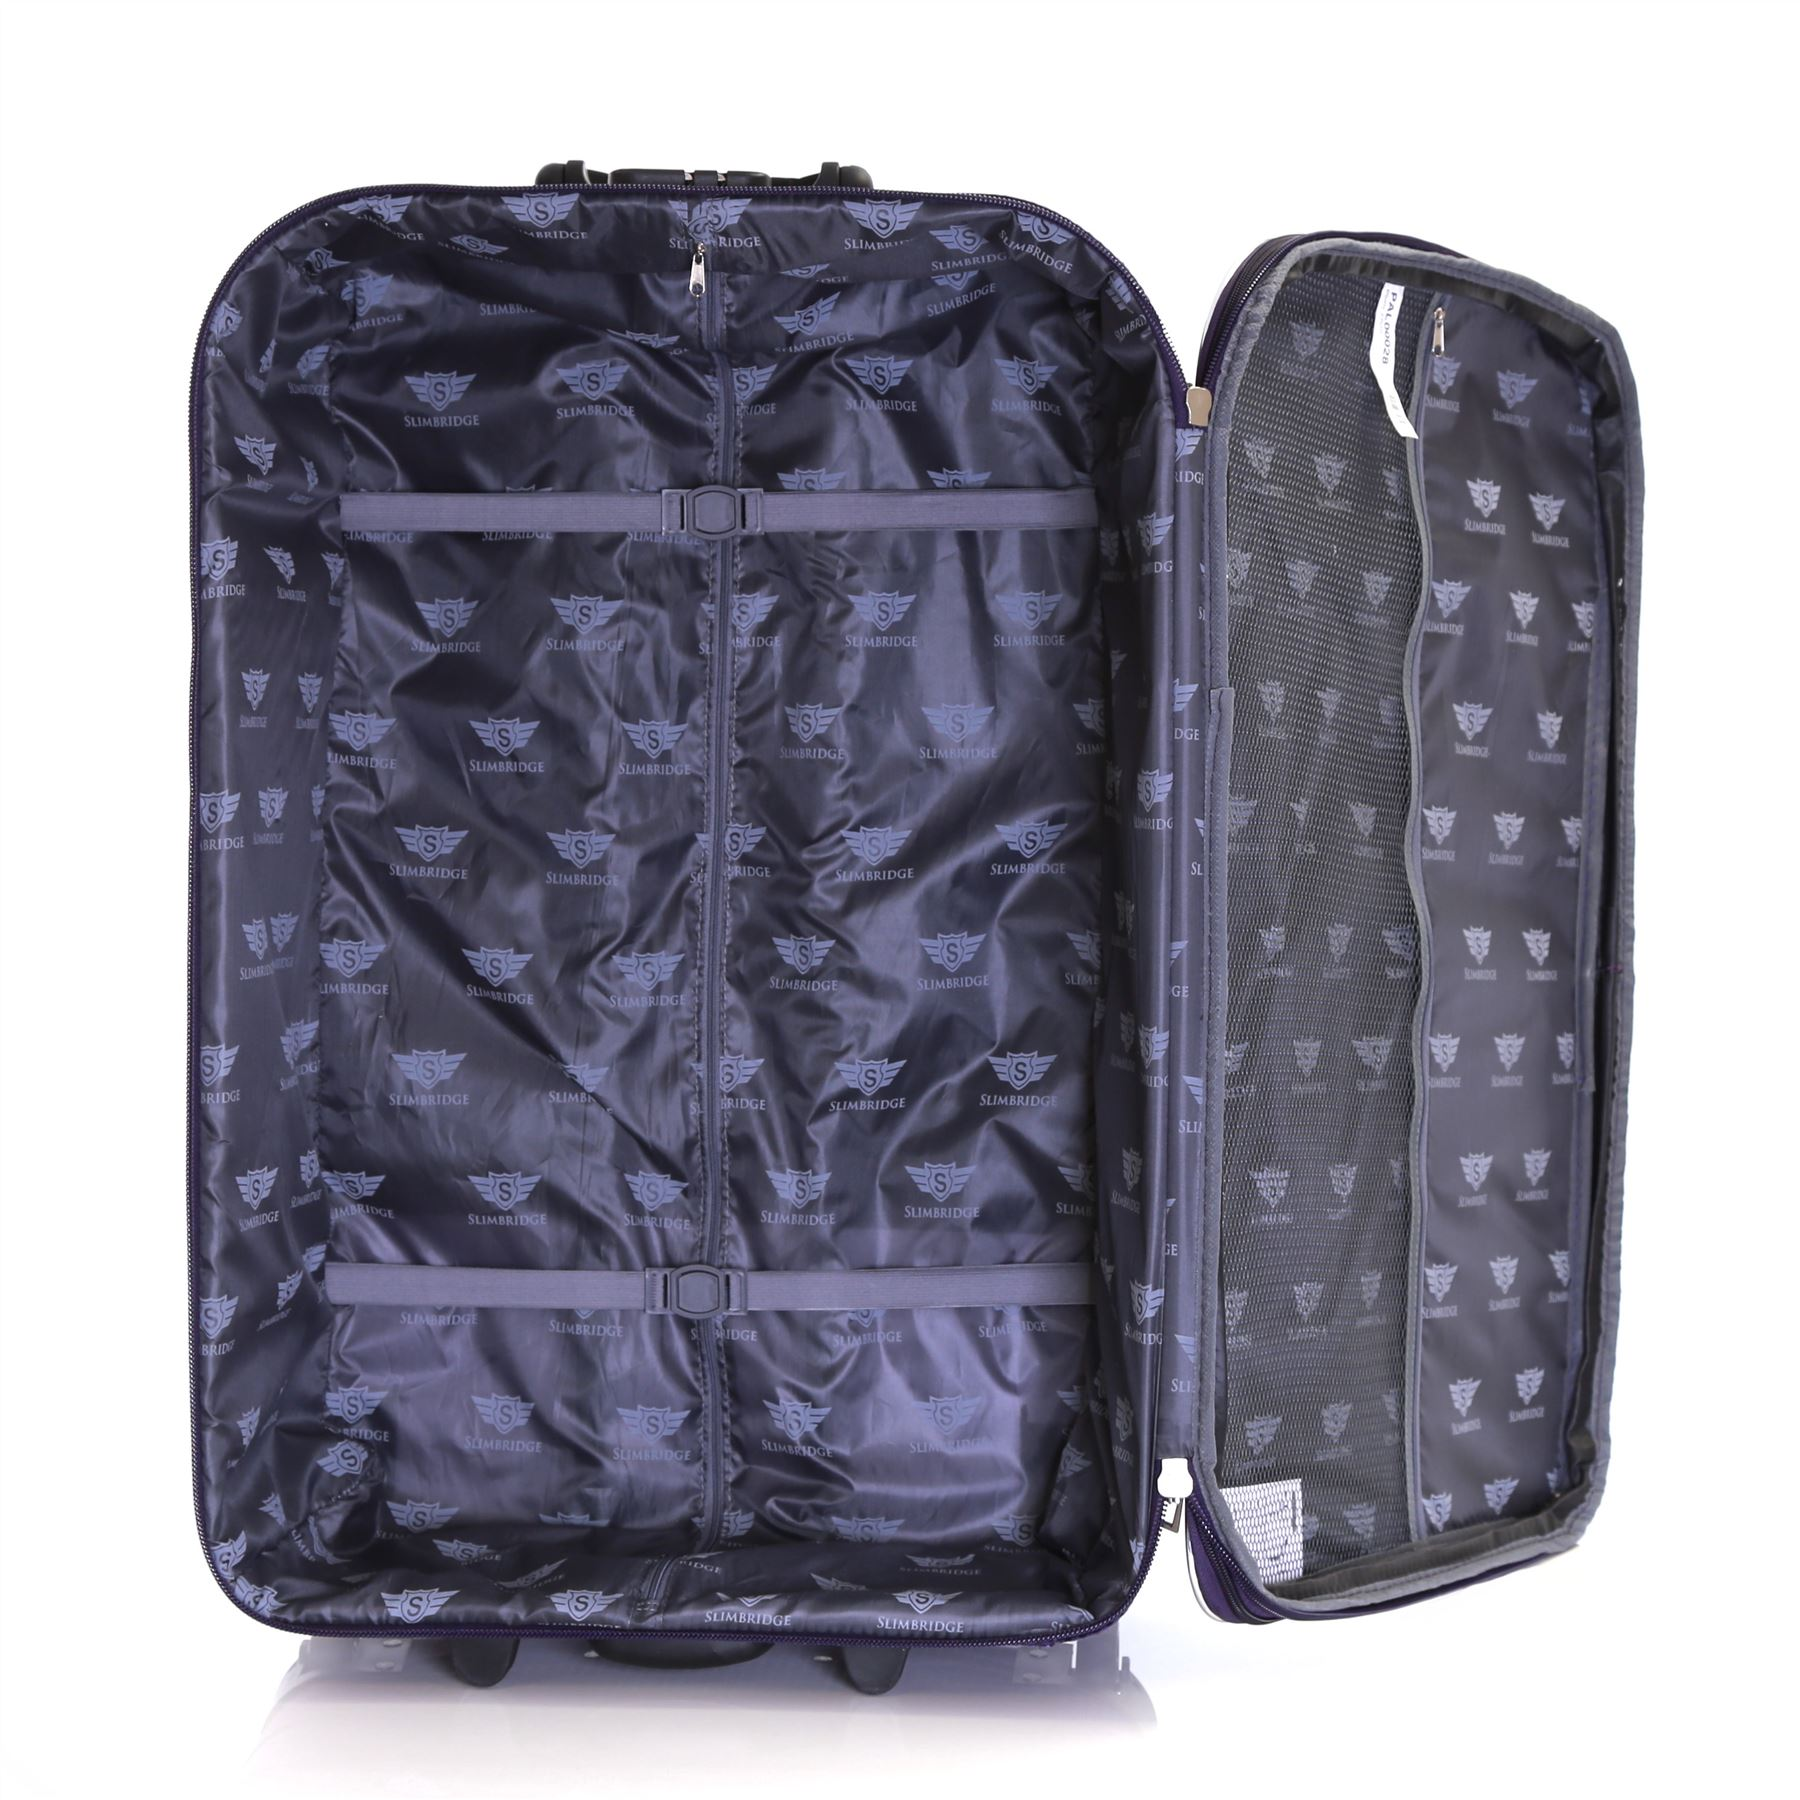 Set-of-2-Lightweight-Expandable-Luggage-Trolleys-Suitcases-Cases-Bags-Set thumbnail 17